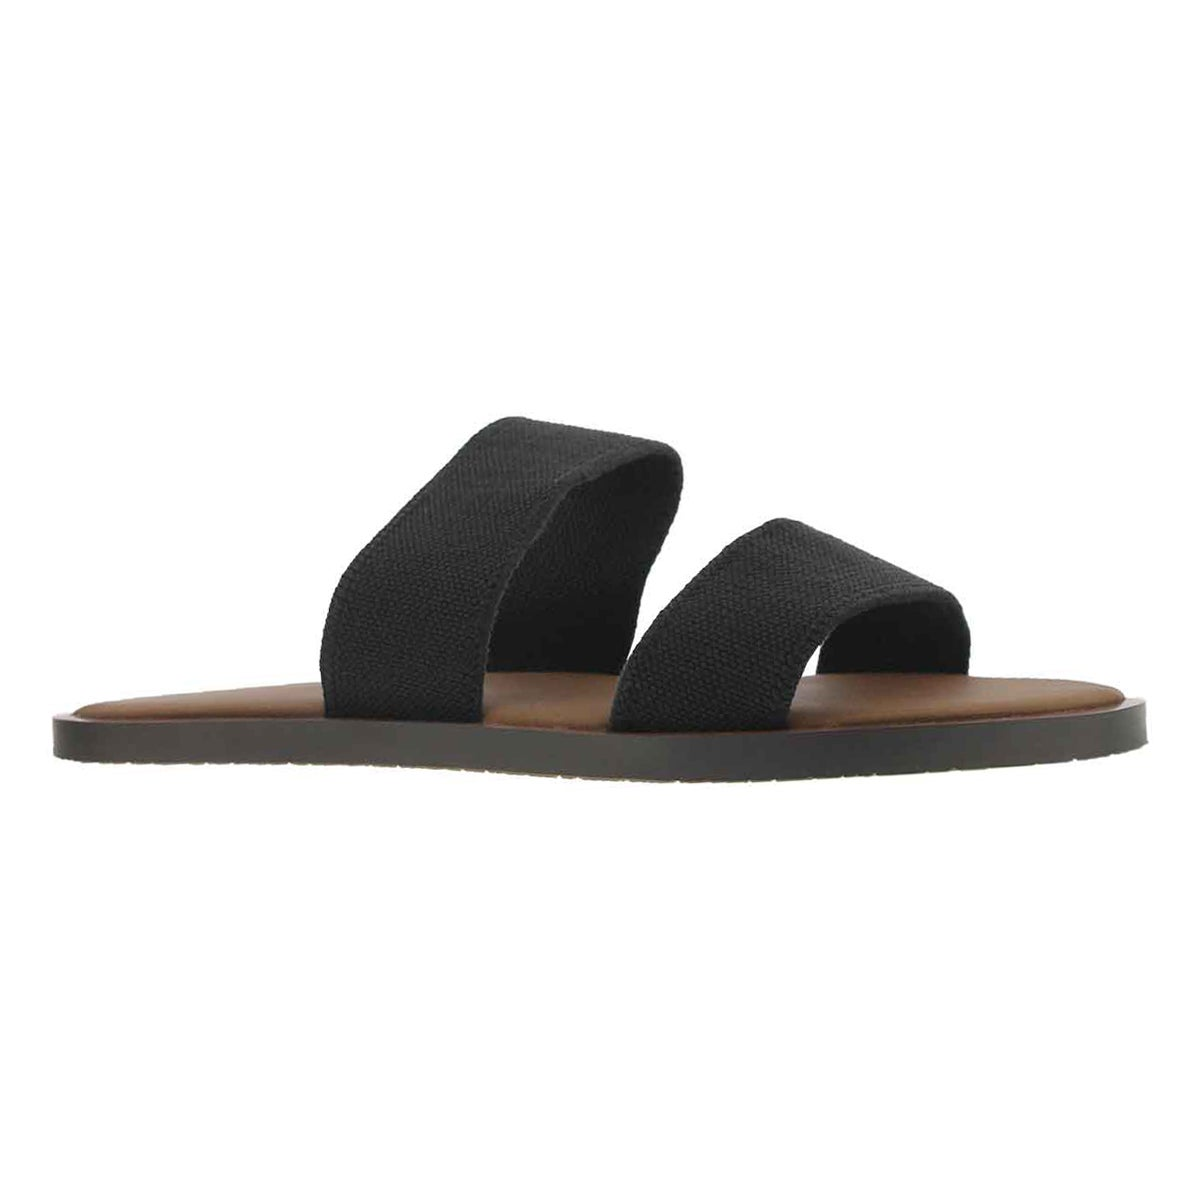 Lds Yoga Gora Gora black slide sandal